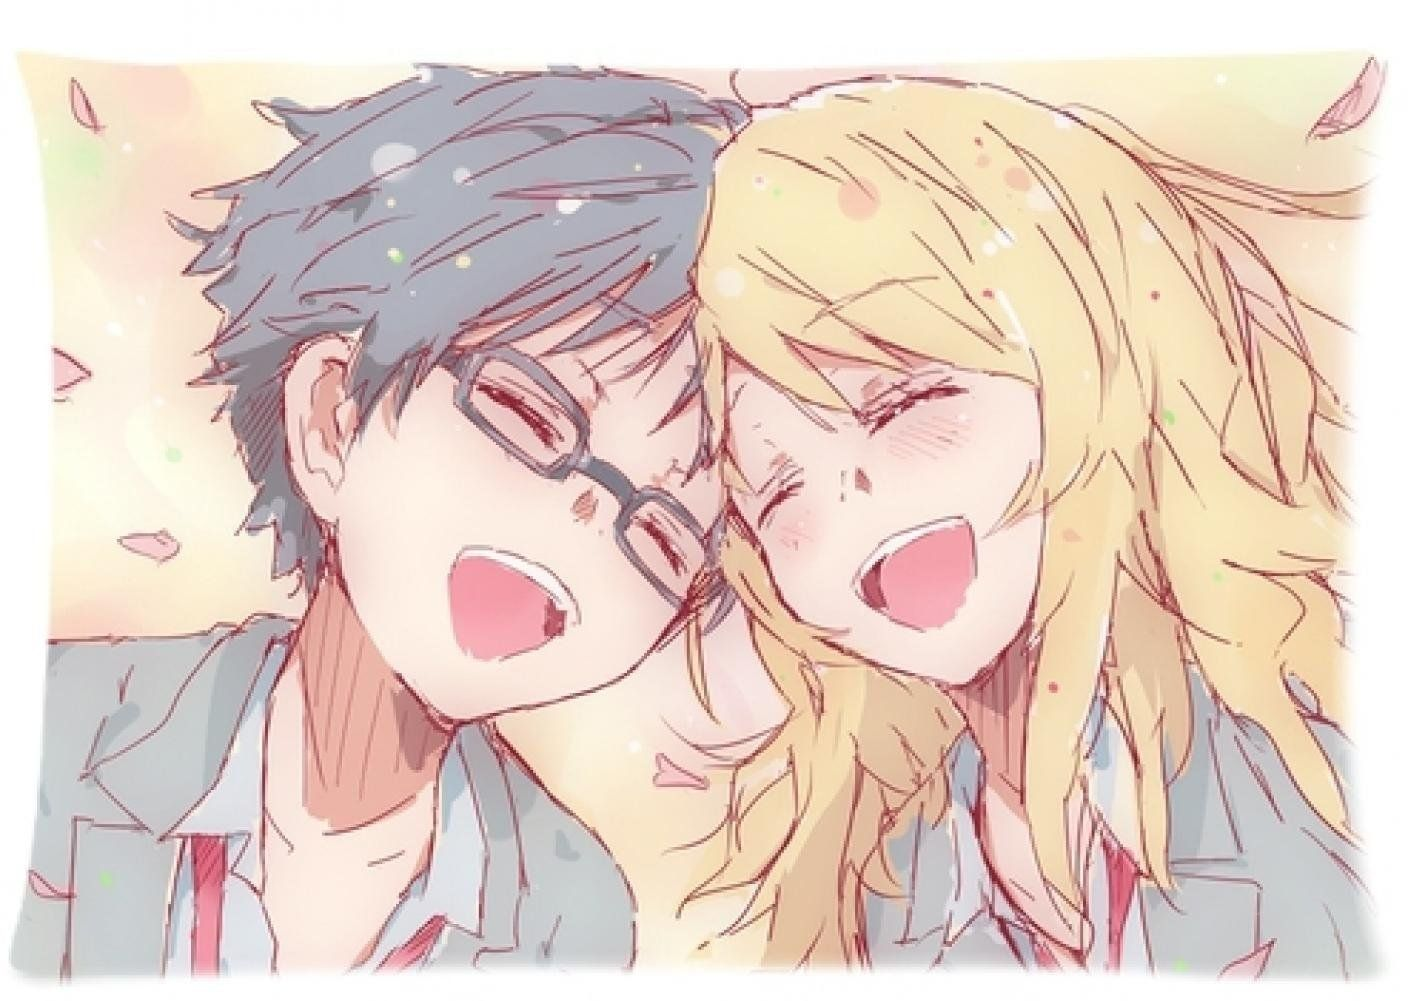 The gift to anime fans a wide variety of hot anime your lie in april the gift to anime fans a wide variety of hot anime your lie in april pillow case cover standard size 20x30 solutioingenieria Images